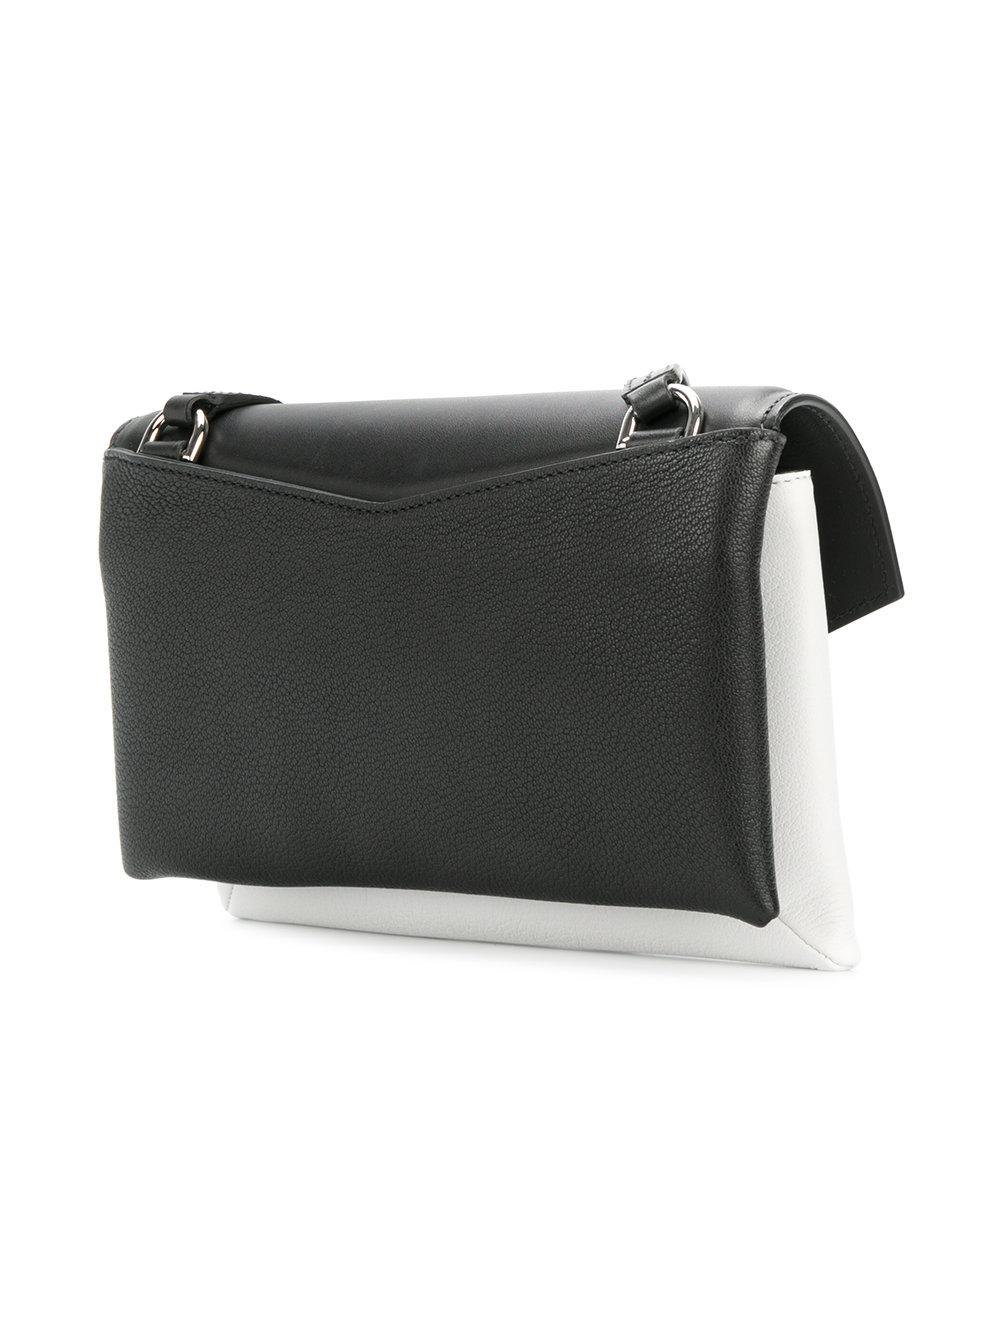 937668e68d73 Givenchy Duetto Crossbody Bag in Black - Lyst